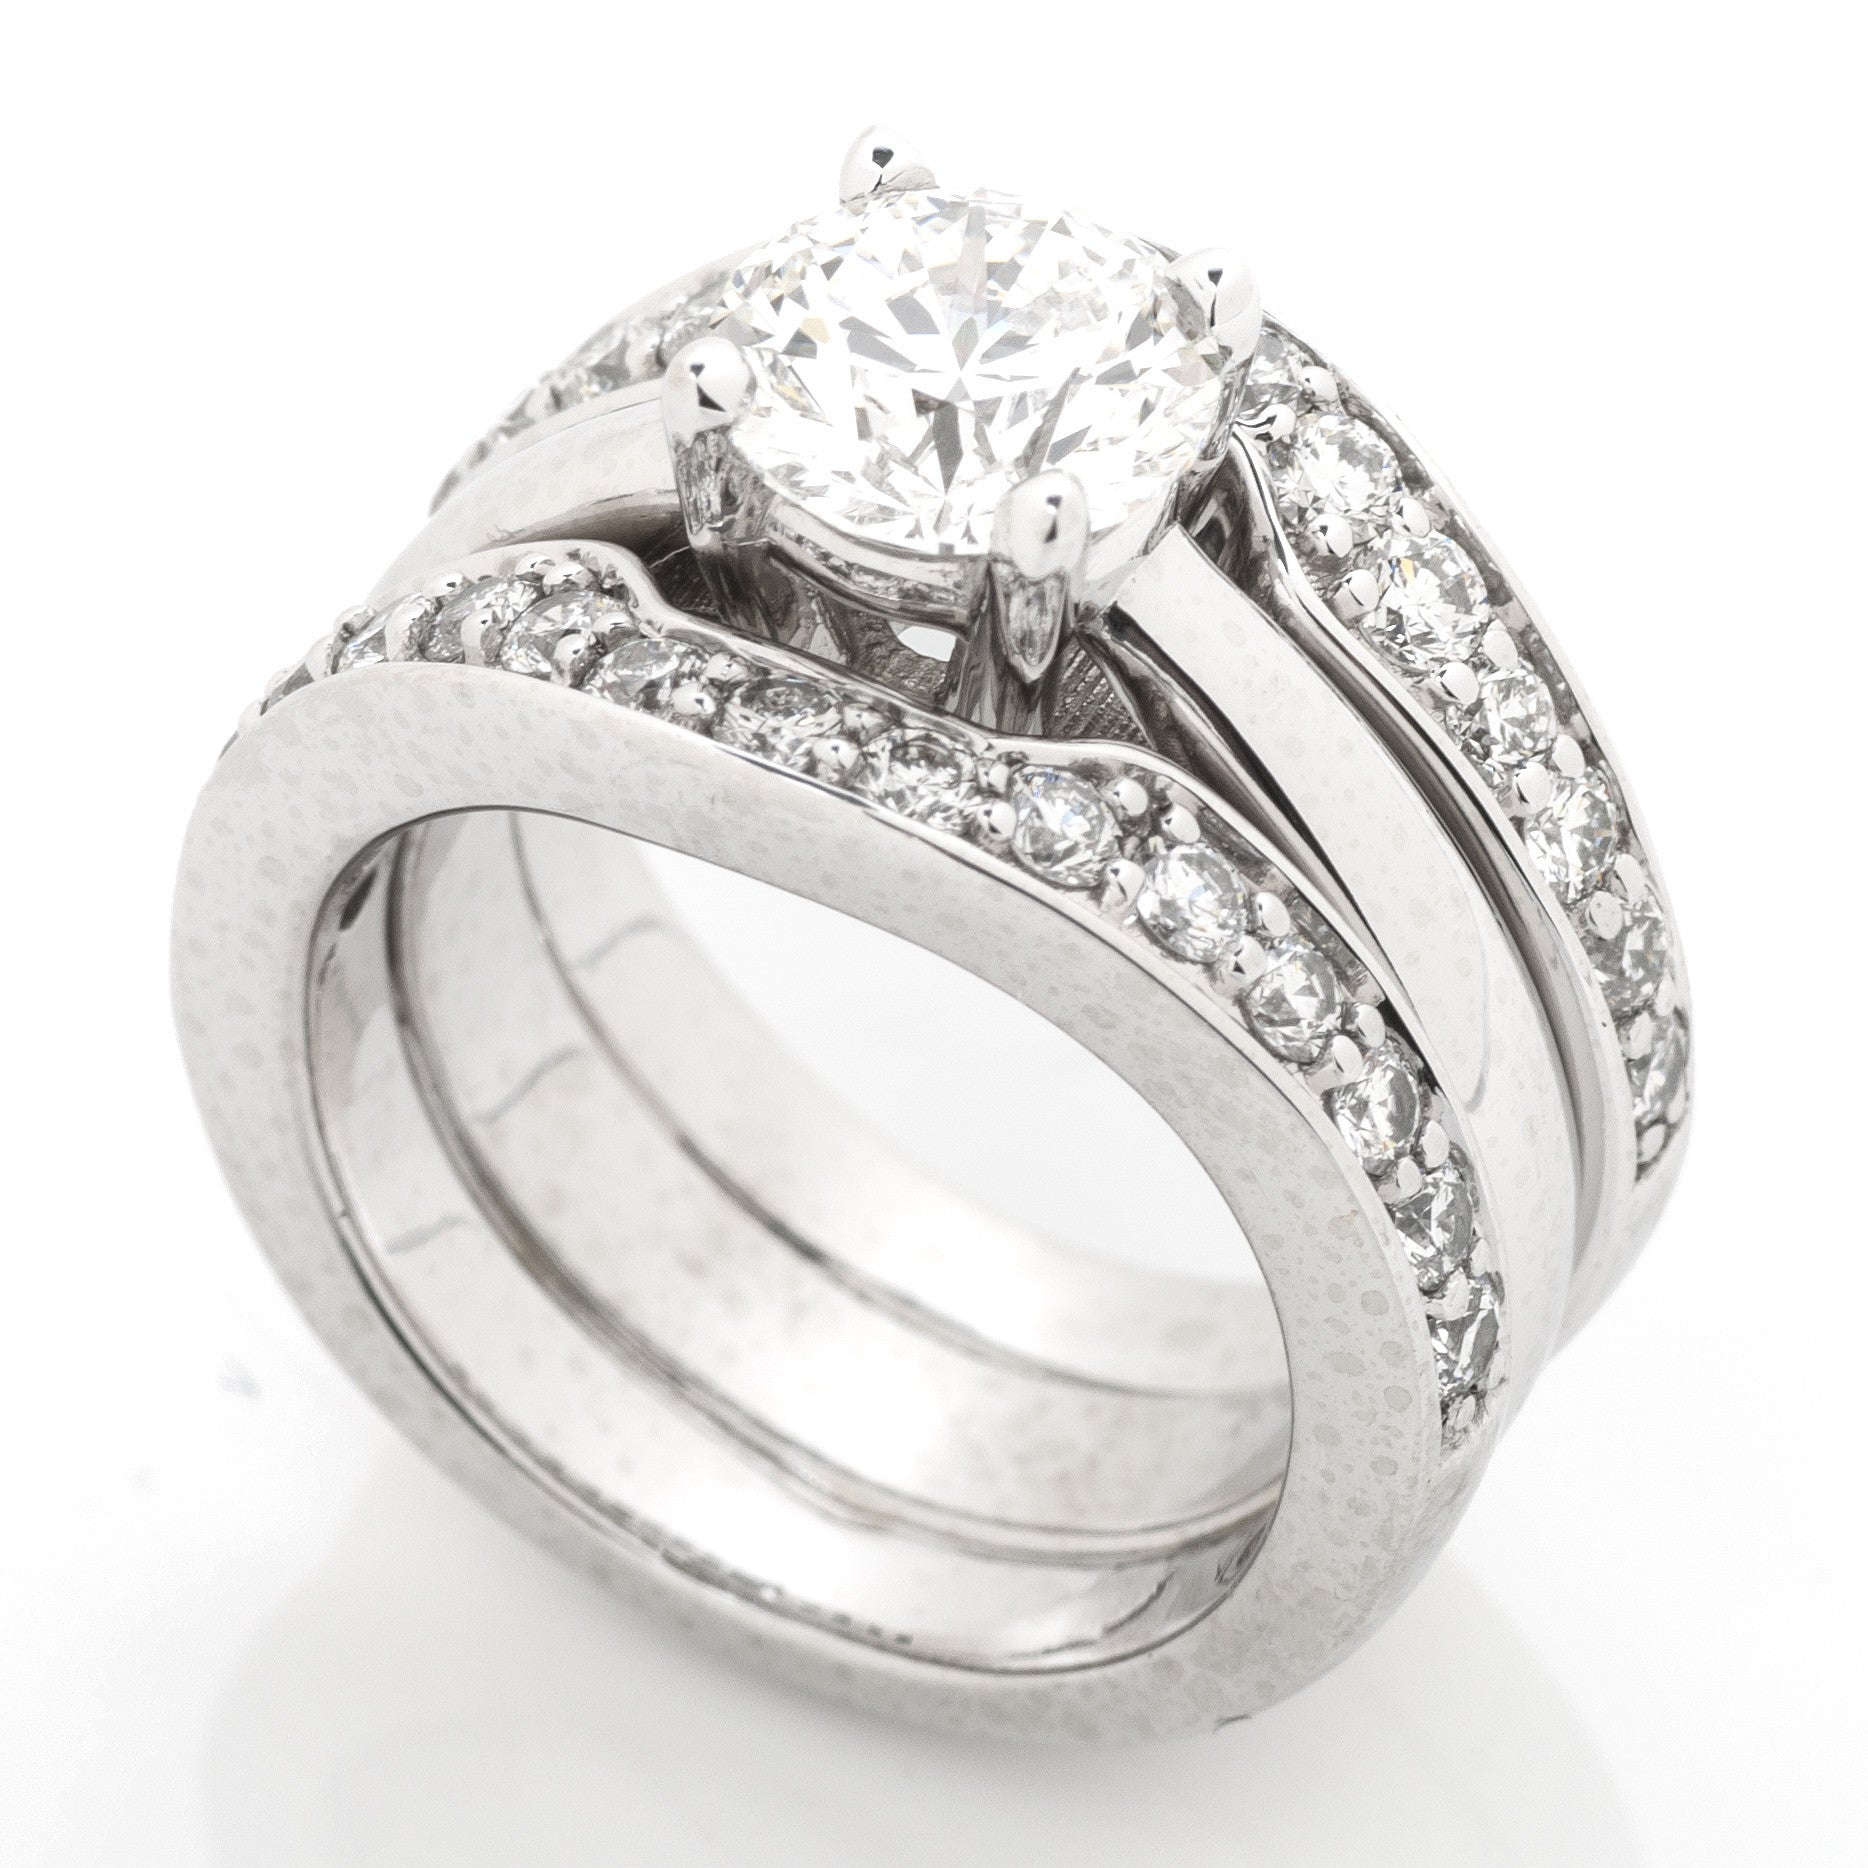 Platinum Statement Engagement Ring with Diamond Border 4